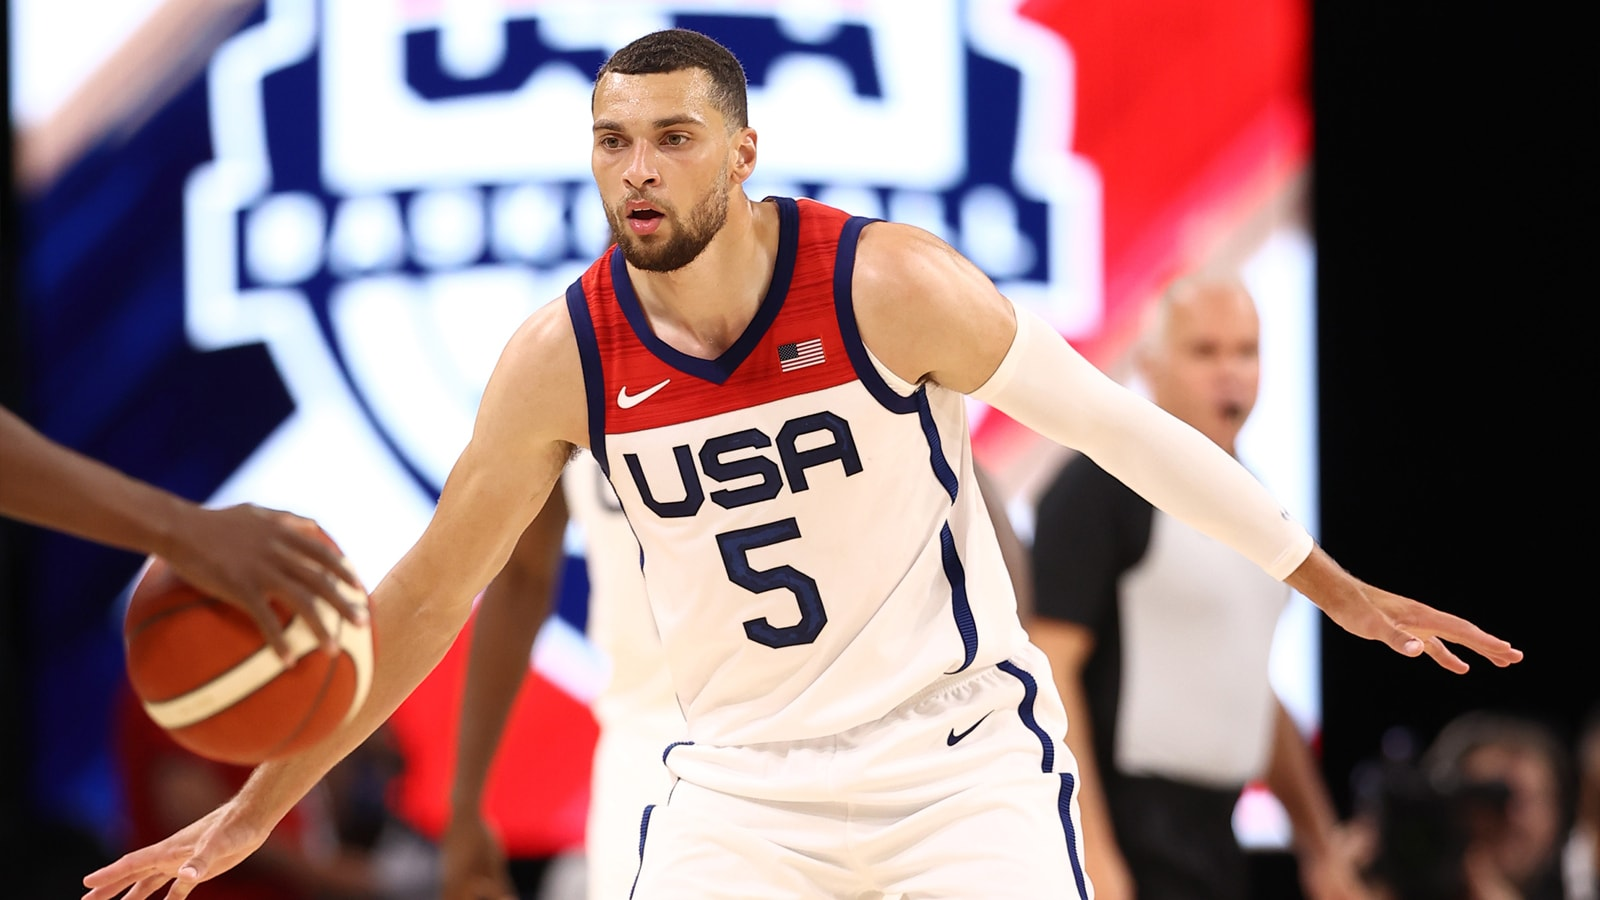 Zach LaVine playing defense for Team USA